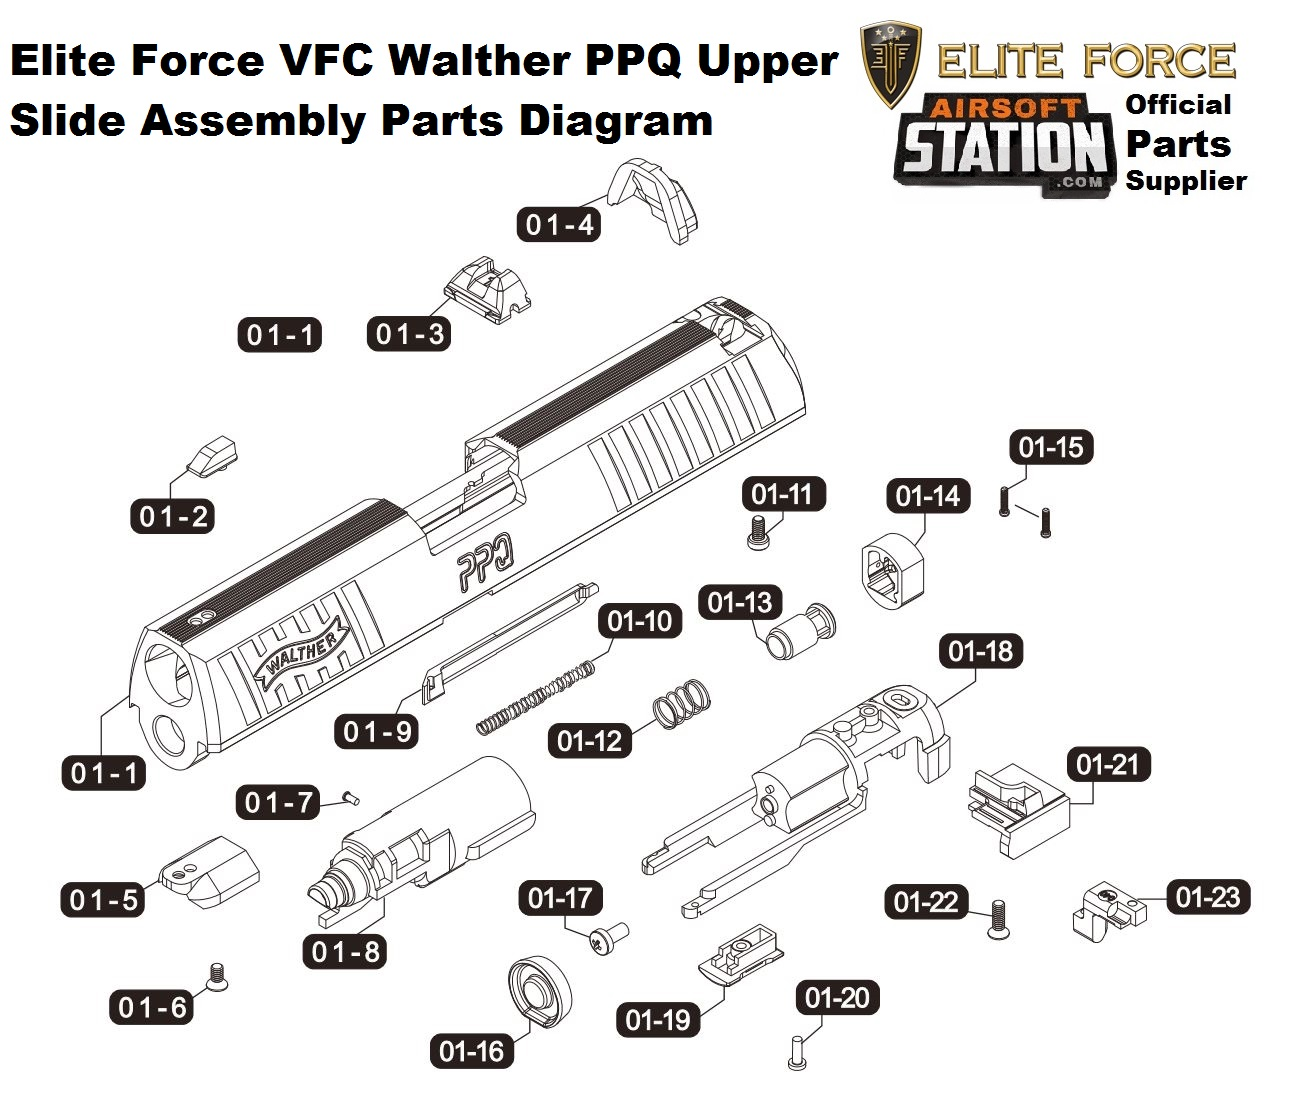 umarex elite force vfc walther ppq green gas pistol parts walther ppk 380 exploded-view umarex, elite force, & vfc ppq upper slide assembly